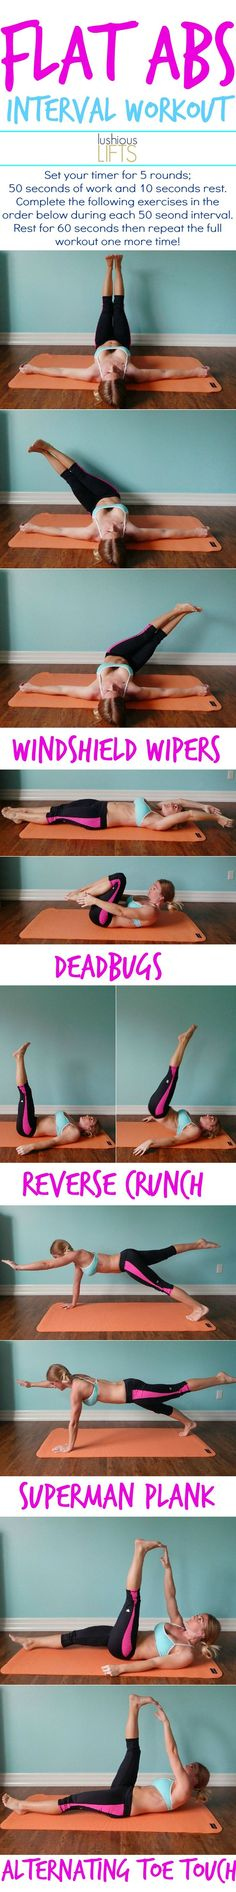 Flat Abs Interval Workout; it doesn't always have to be about crunches. Change up your ab workouts with windshield wipers and superman planks!!